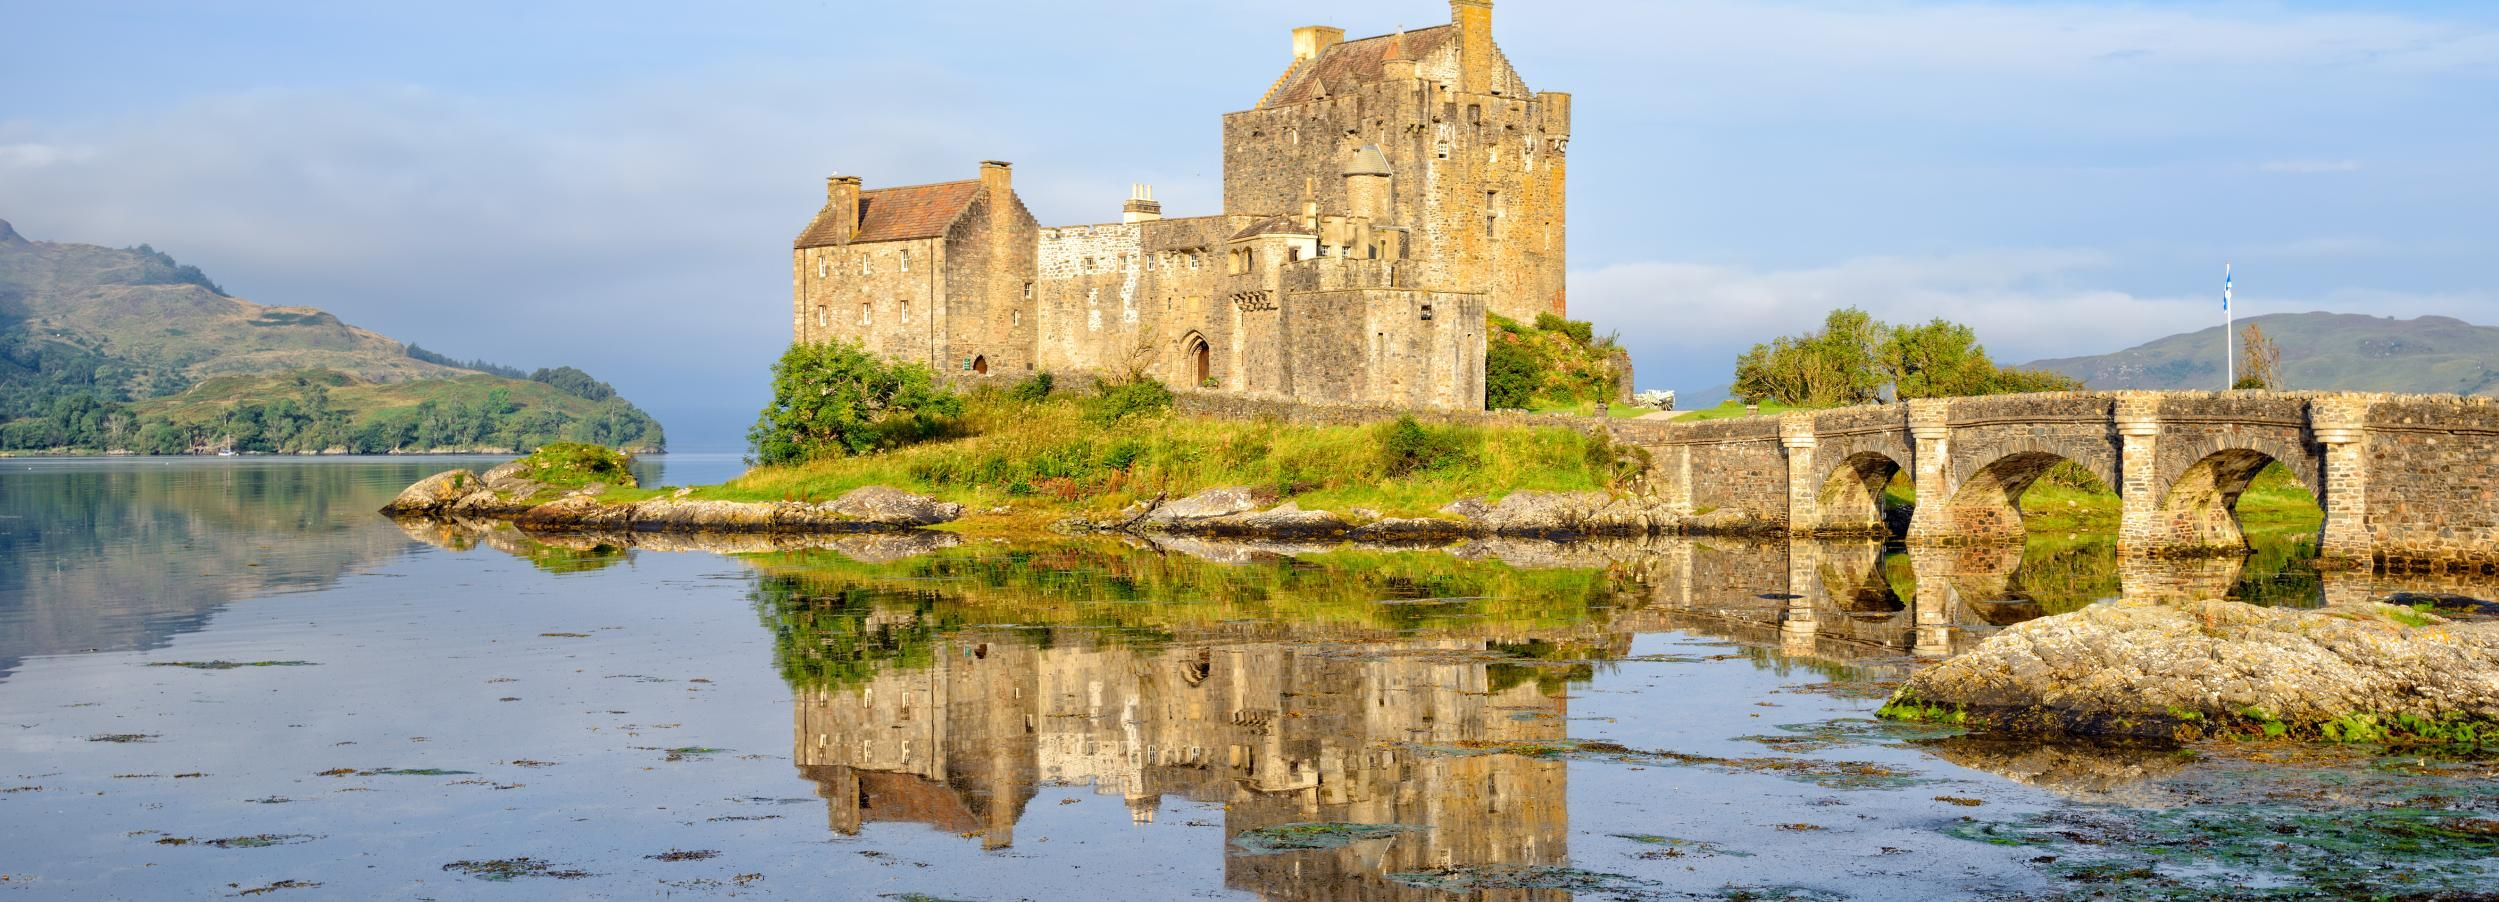 Ab Inverness: Isle of Skye & Eilean Donan Castle